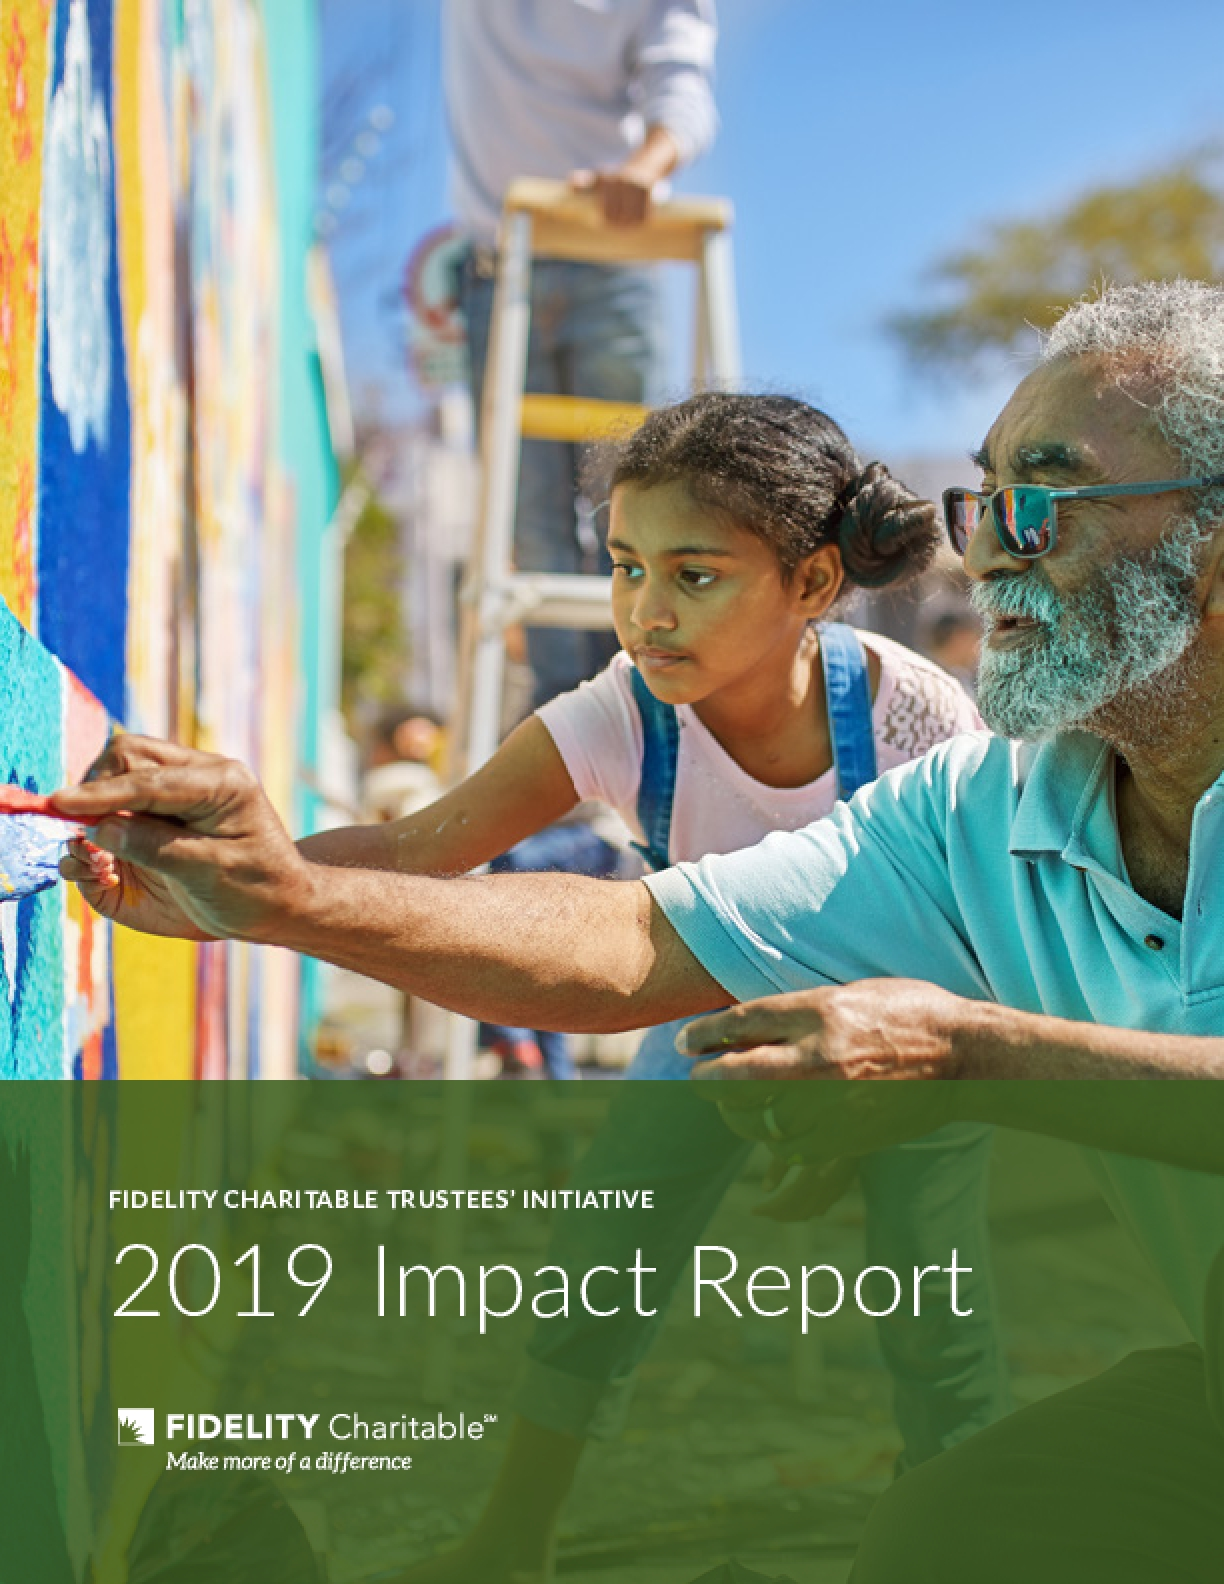 Fidelity Charitable Trustees' Initiative 2019 Impact Report